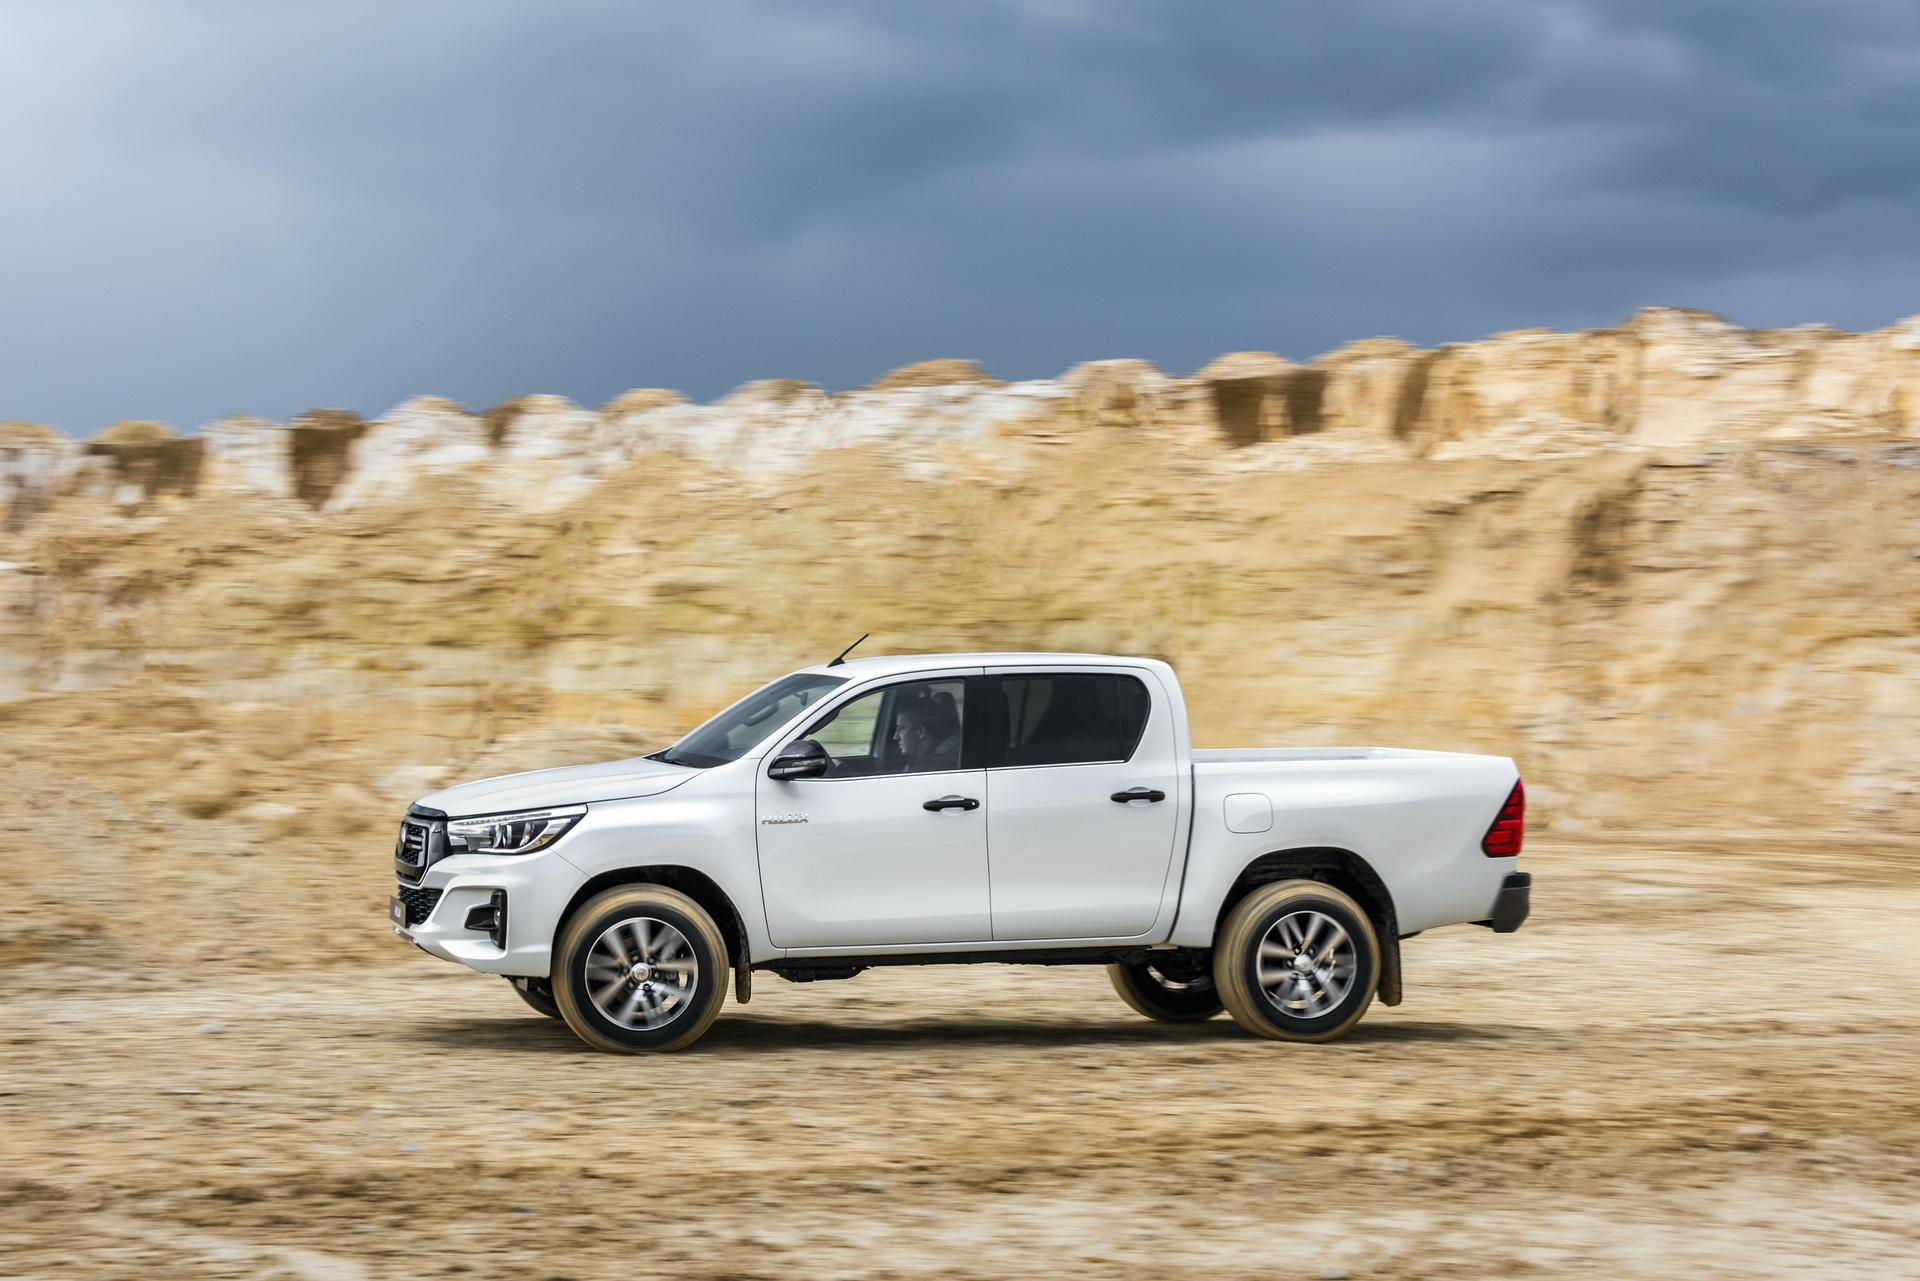 Toyota_Hilux_Special_Edition_0043